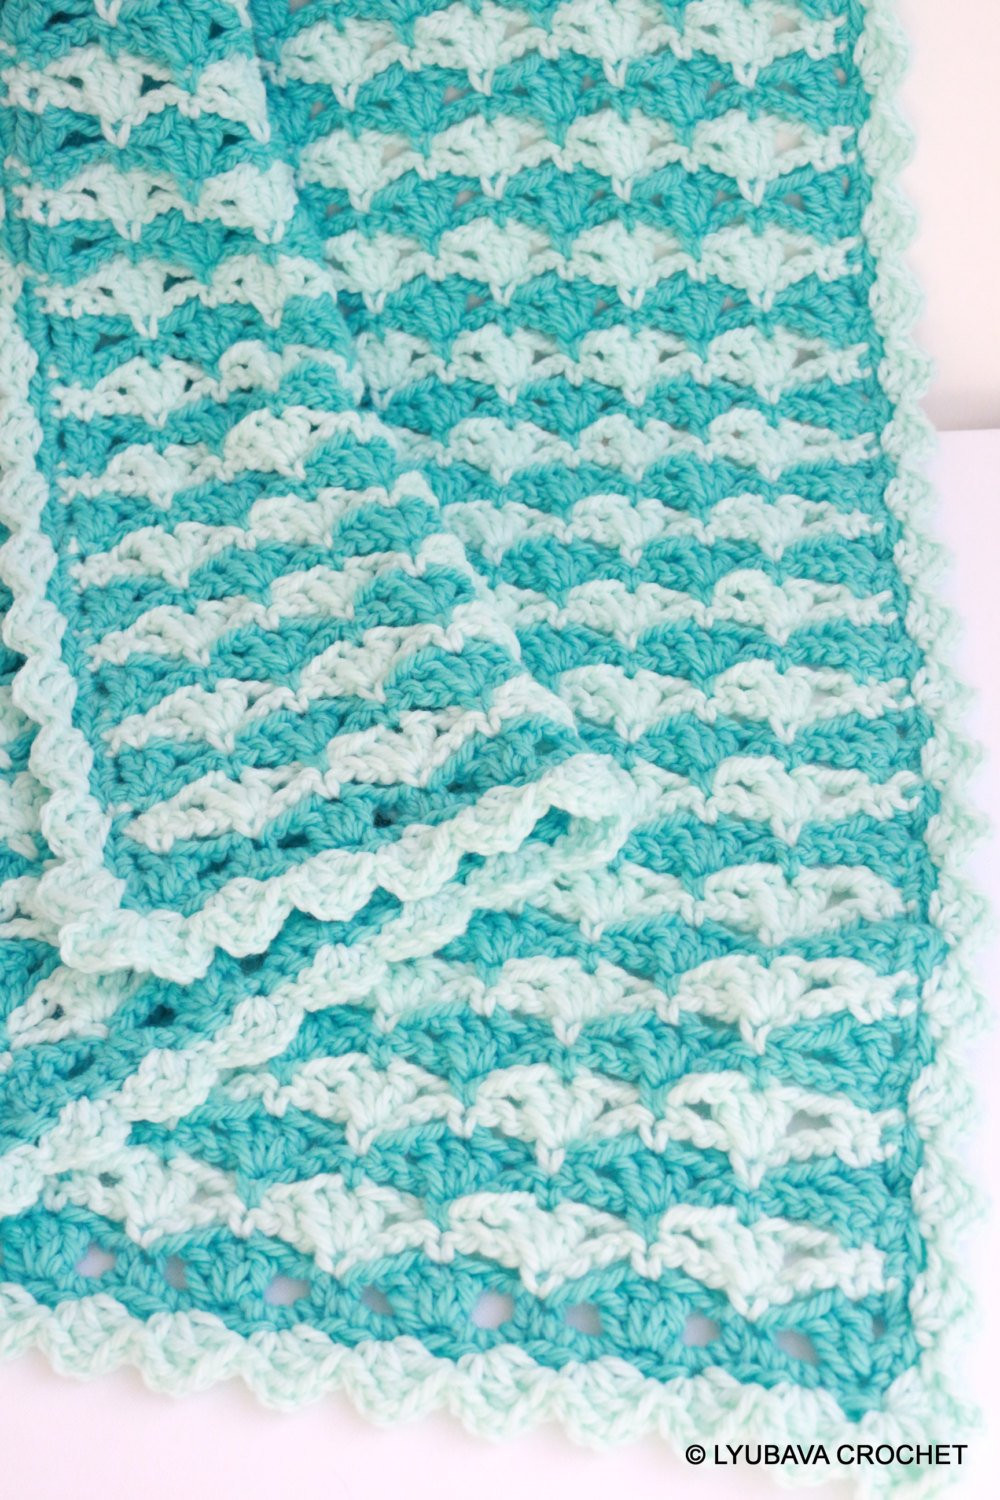 Baby Boy Crochet Blanket Patterns Inspirational Turquoise Baby Blanket Chunky Crochet Blanket for Baby Boy Of Baby Boy Crochet Blanket Patterns New Beautiful Baby Boy Blanket Crochet Pattern for Pram